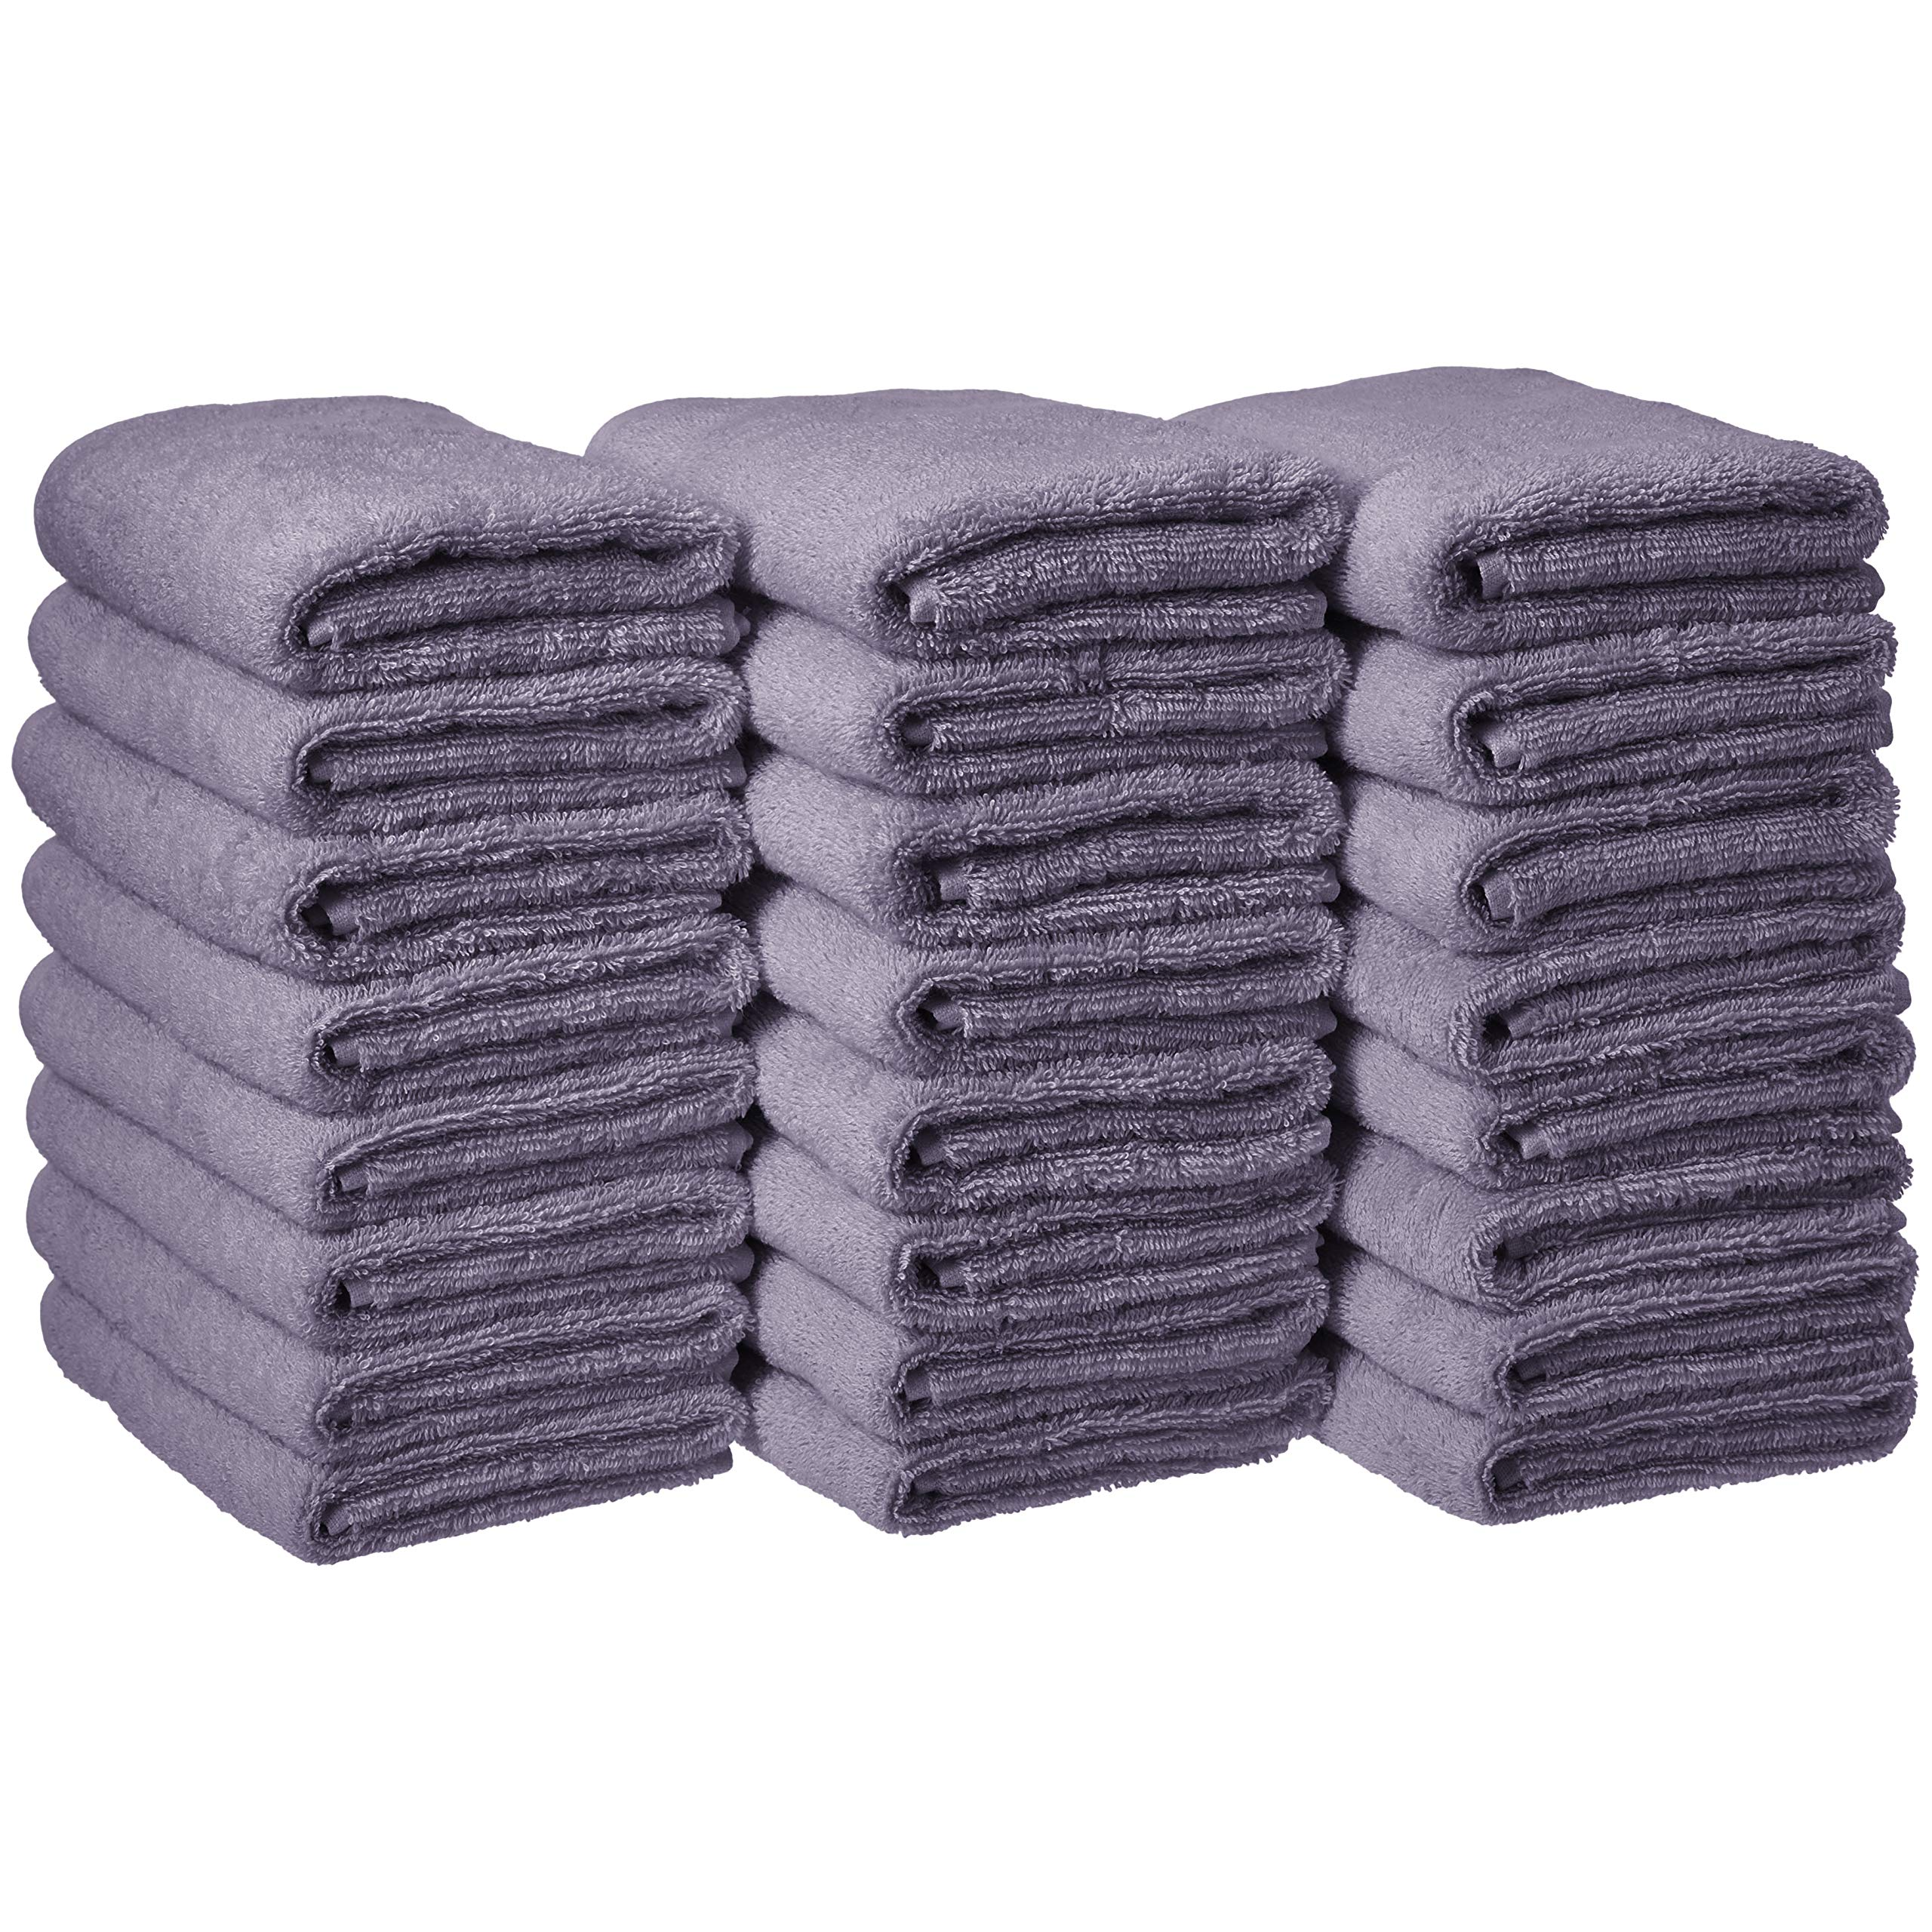 AmazonBasics Cotton Hand Towels - Pack of 24, Lavender by AmazonBasics